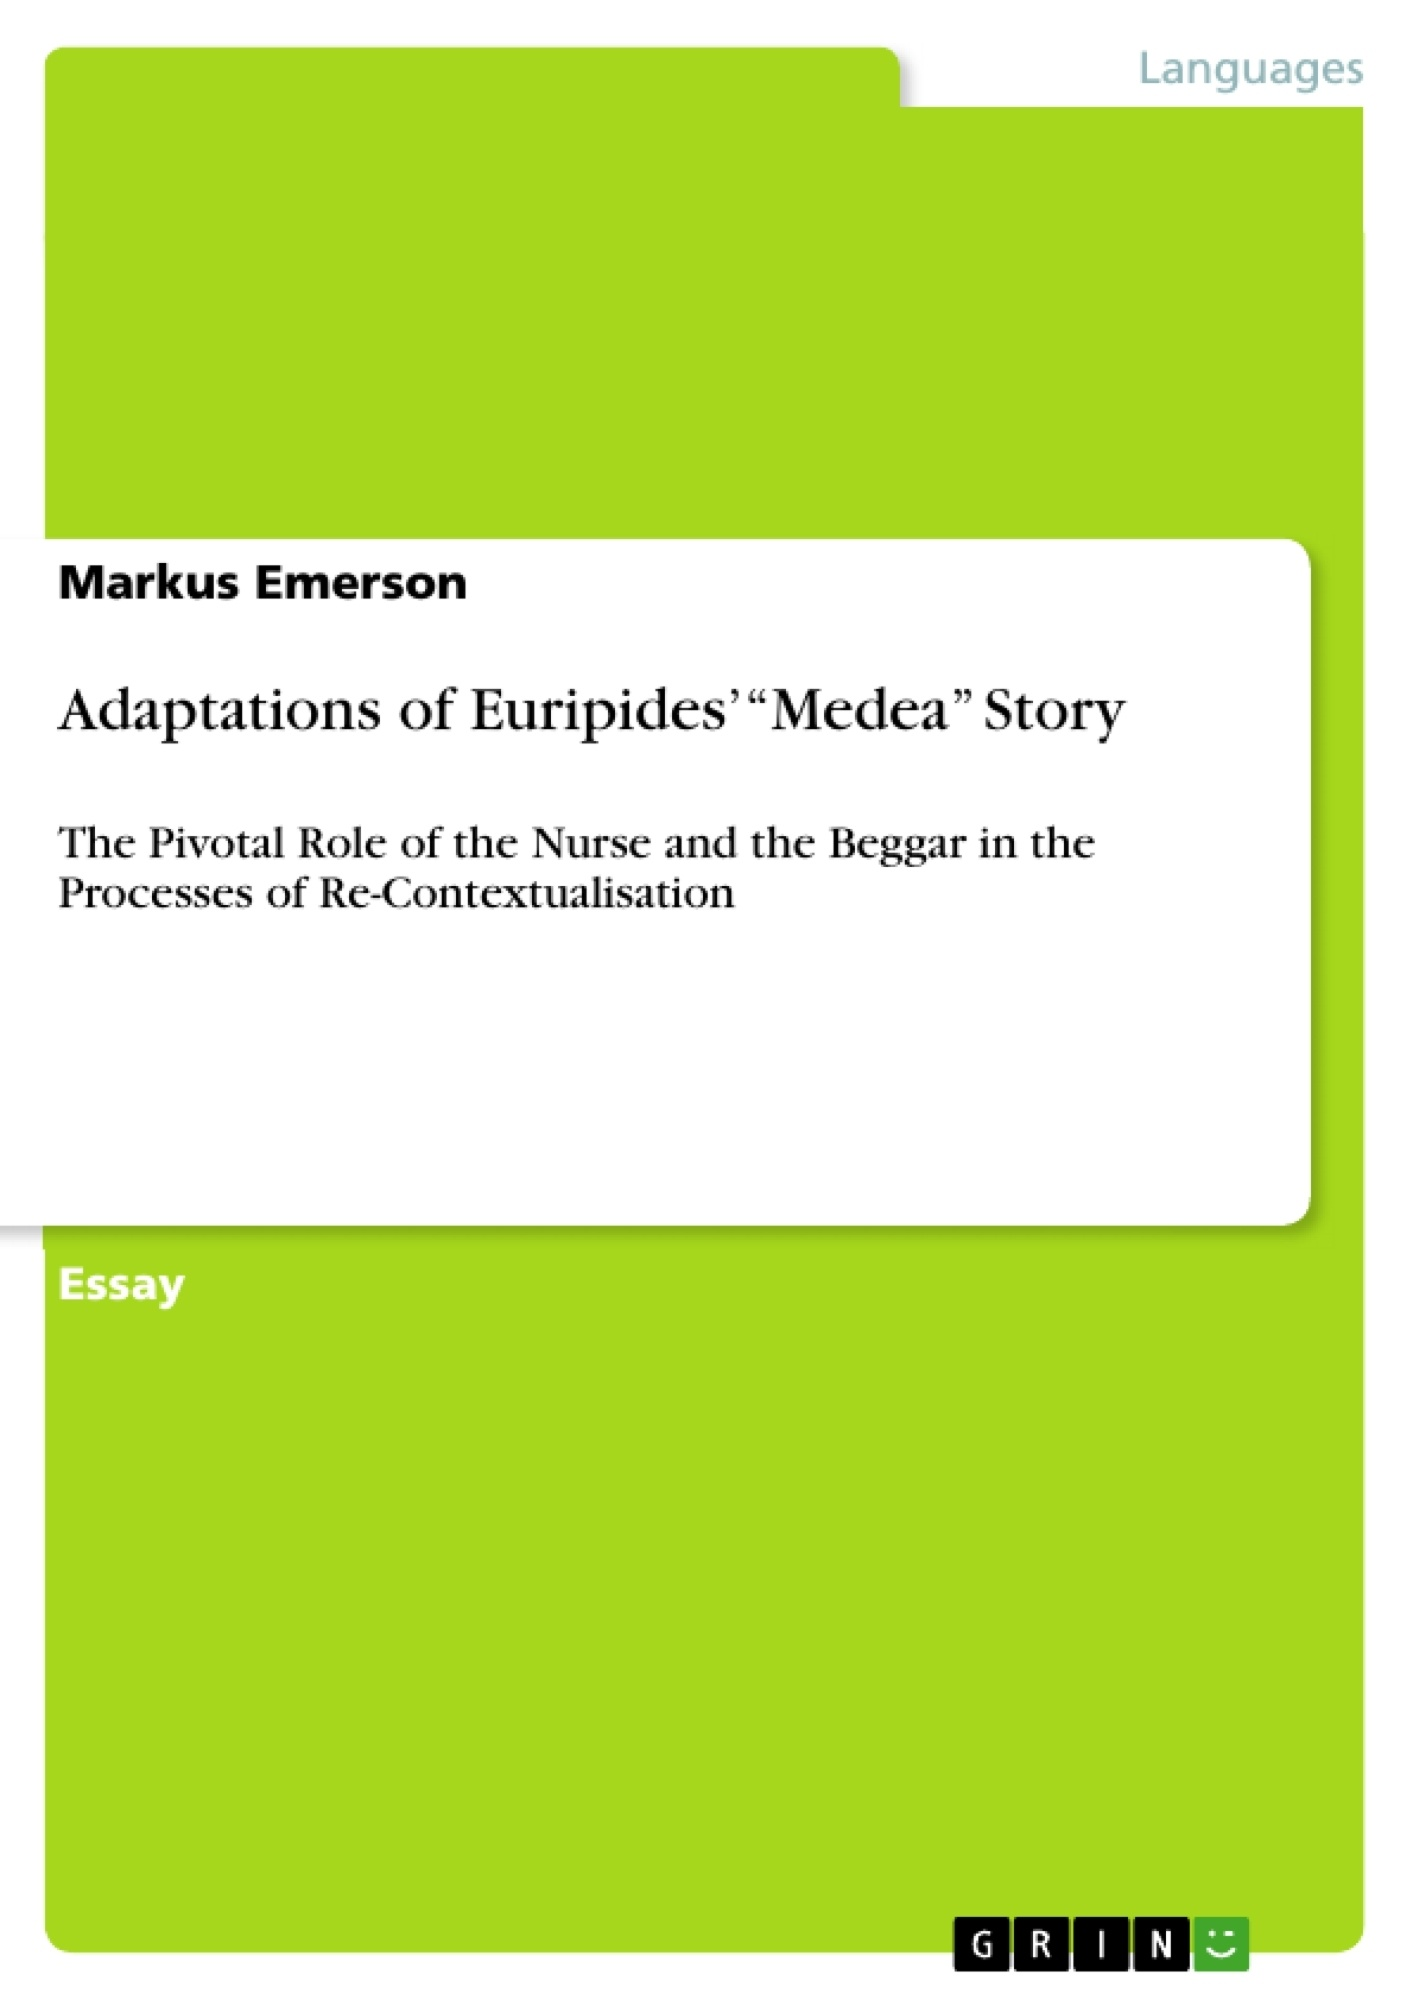 medea essay adaptations of euripides ldquo medea rdquo story  adaptations of euripides ldquo medea rdquo story publish your master s adaptations of euripides ldquomedeardquo story essays